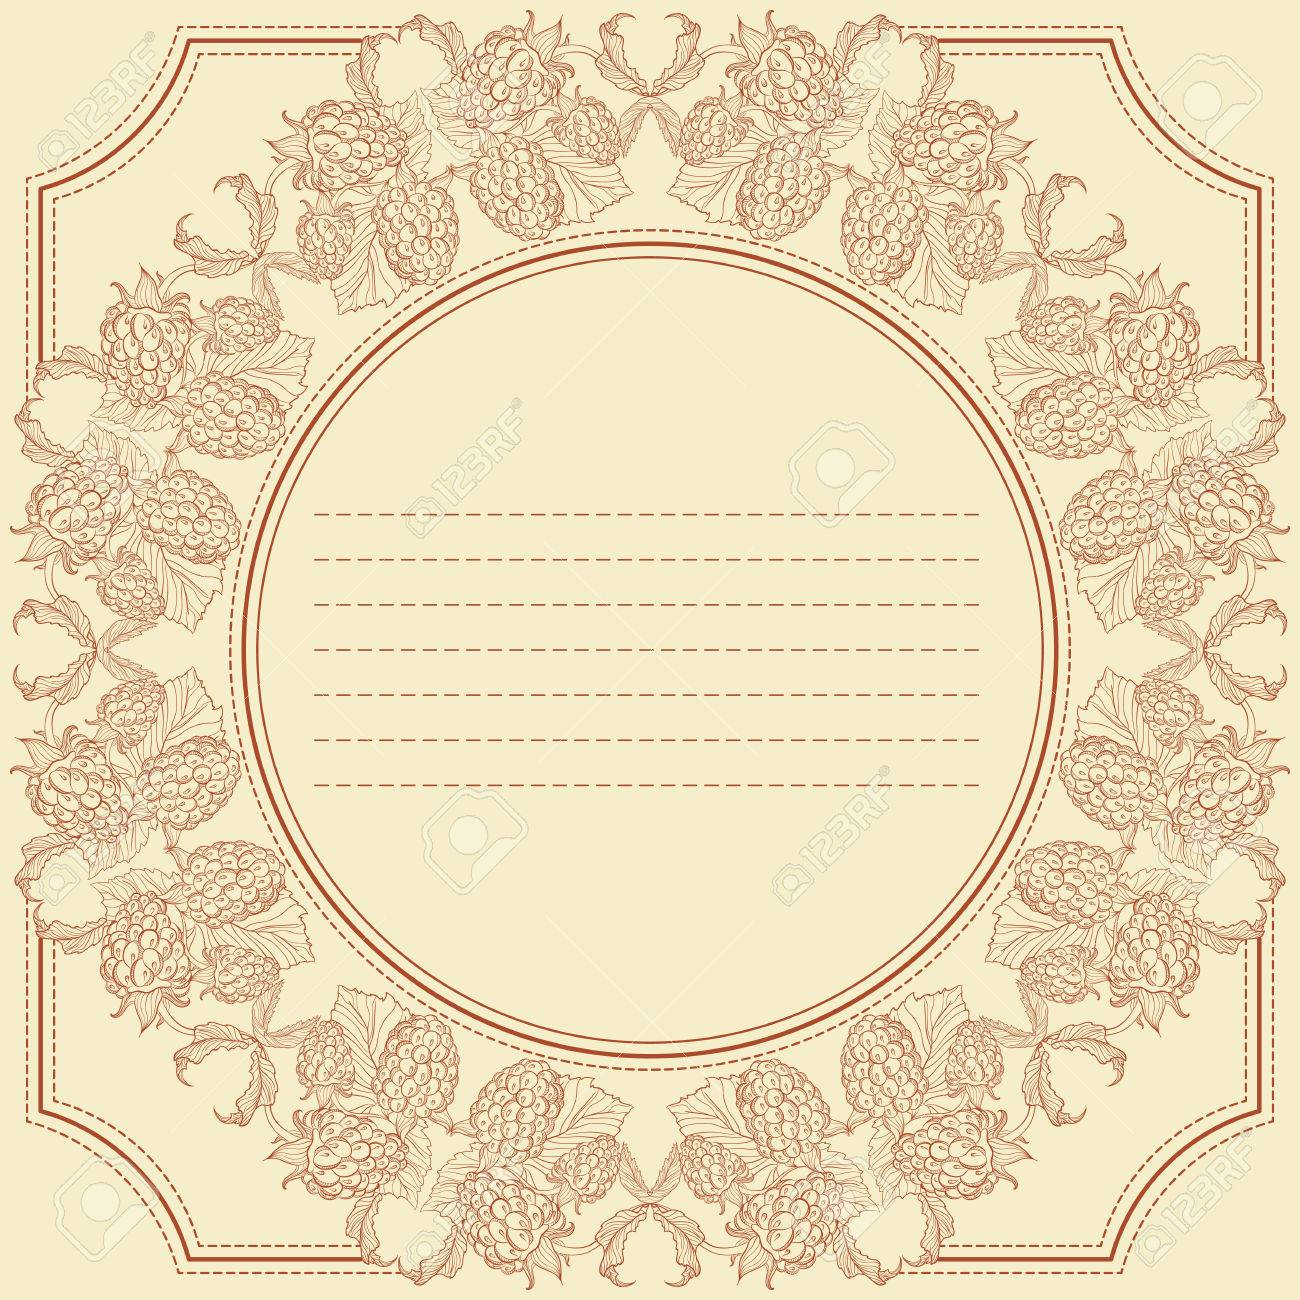 Vector Vintage Frame Card With Raspberries Design For Notebook